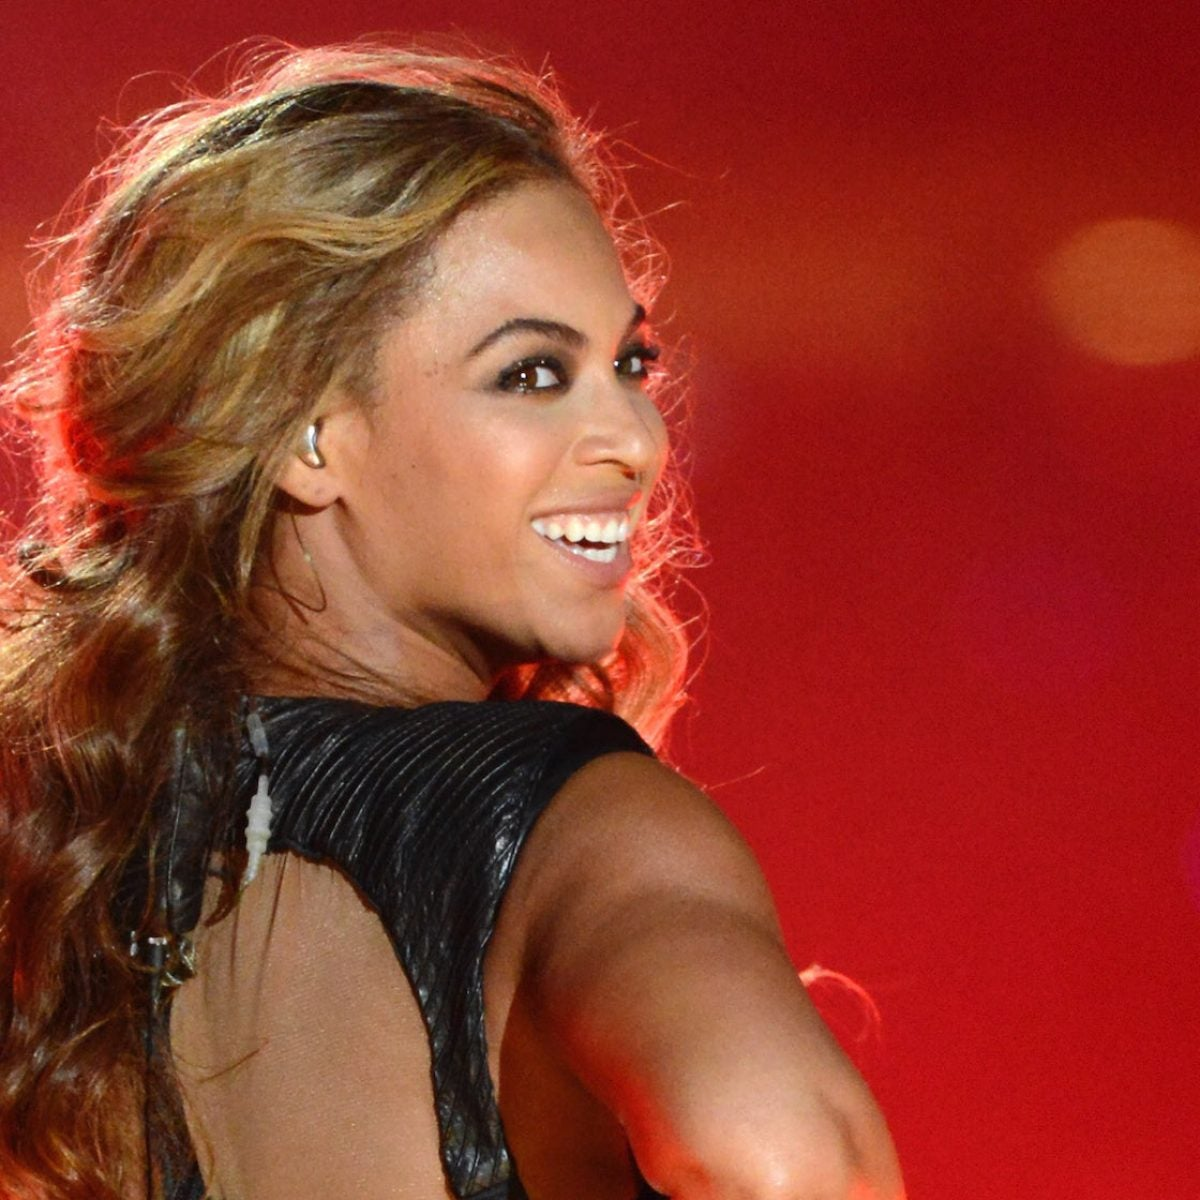 Get Your Knees Ready For The #SavageChallenge2 Thanks To Beyoncé's Remix